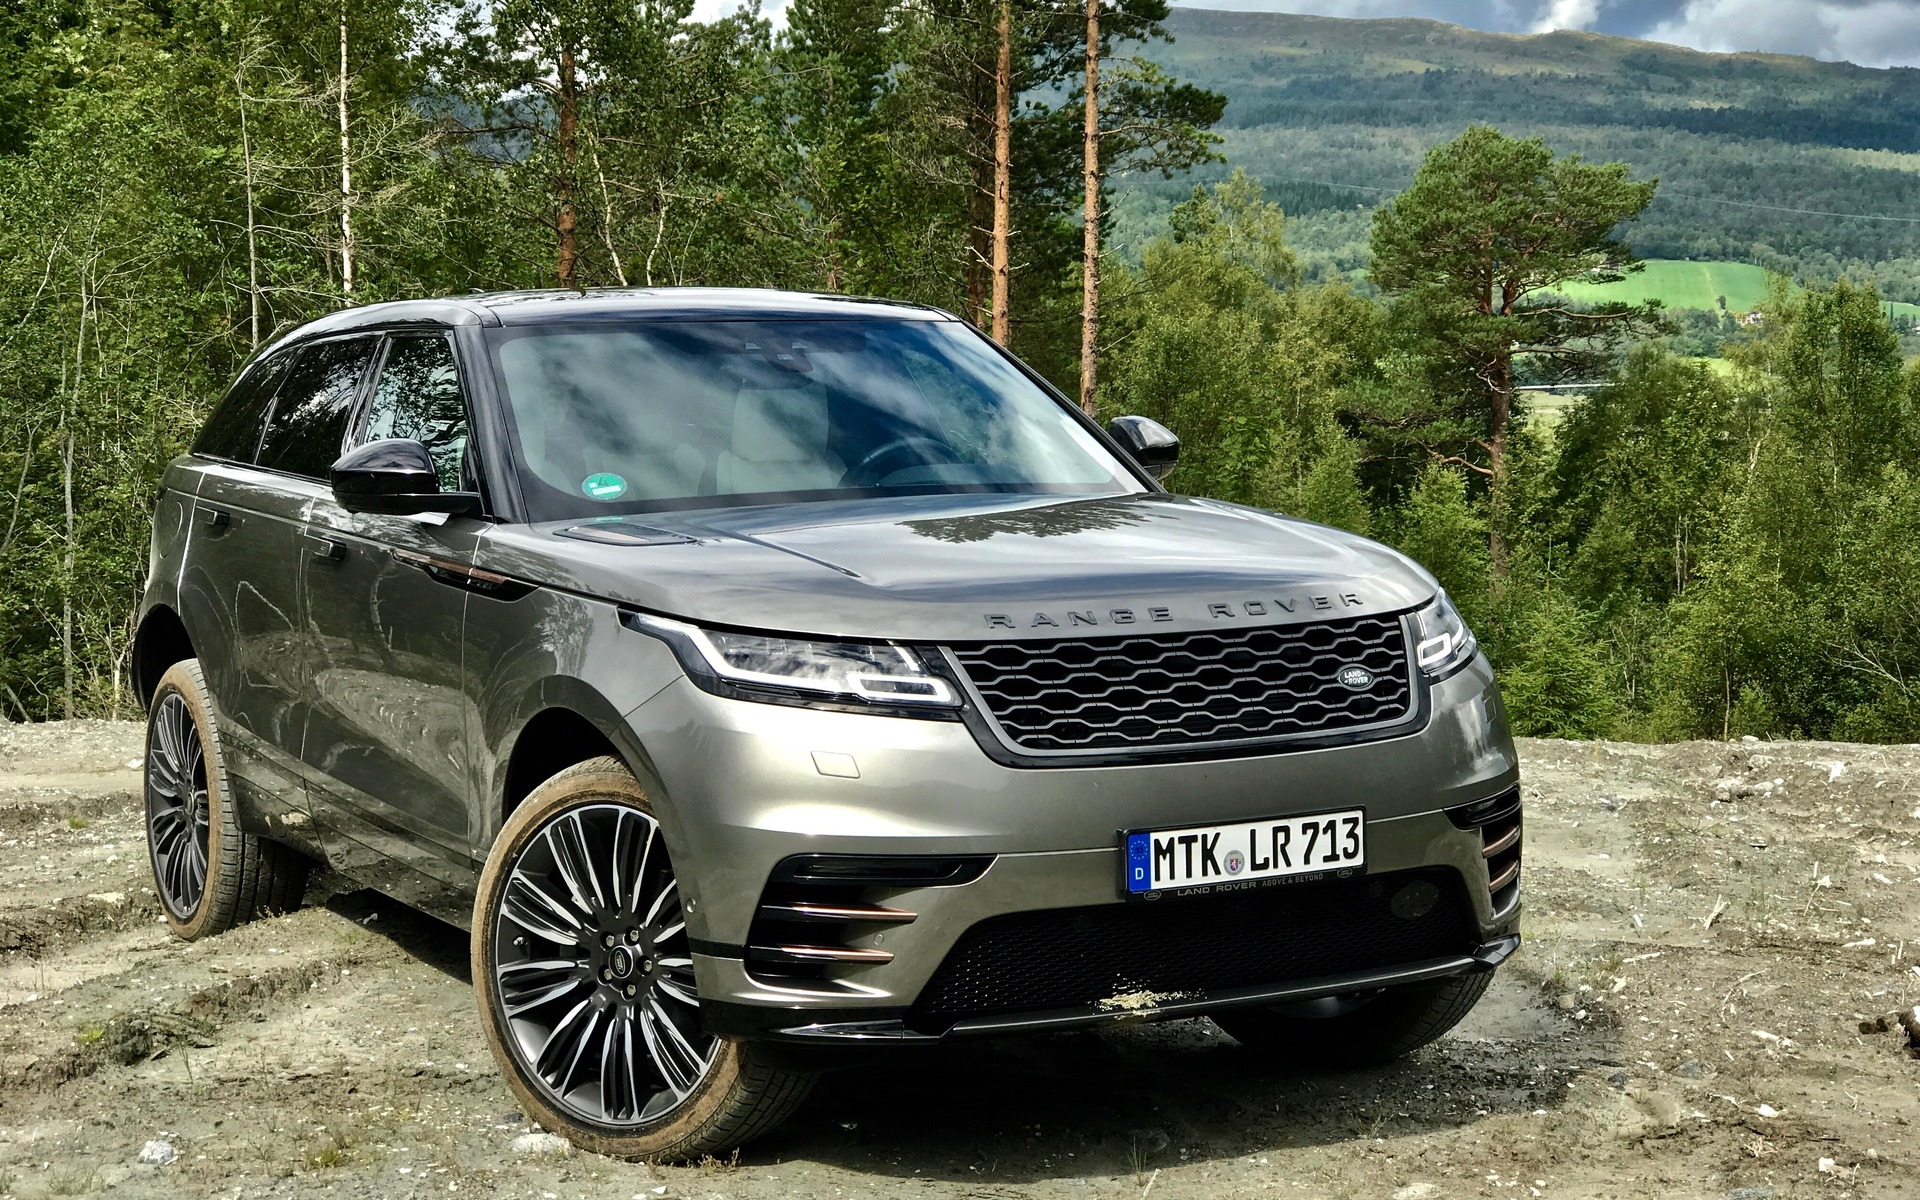 2018 Range Rover Velar: A Distinguished Off-roader - The ...